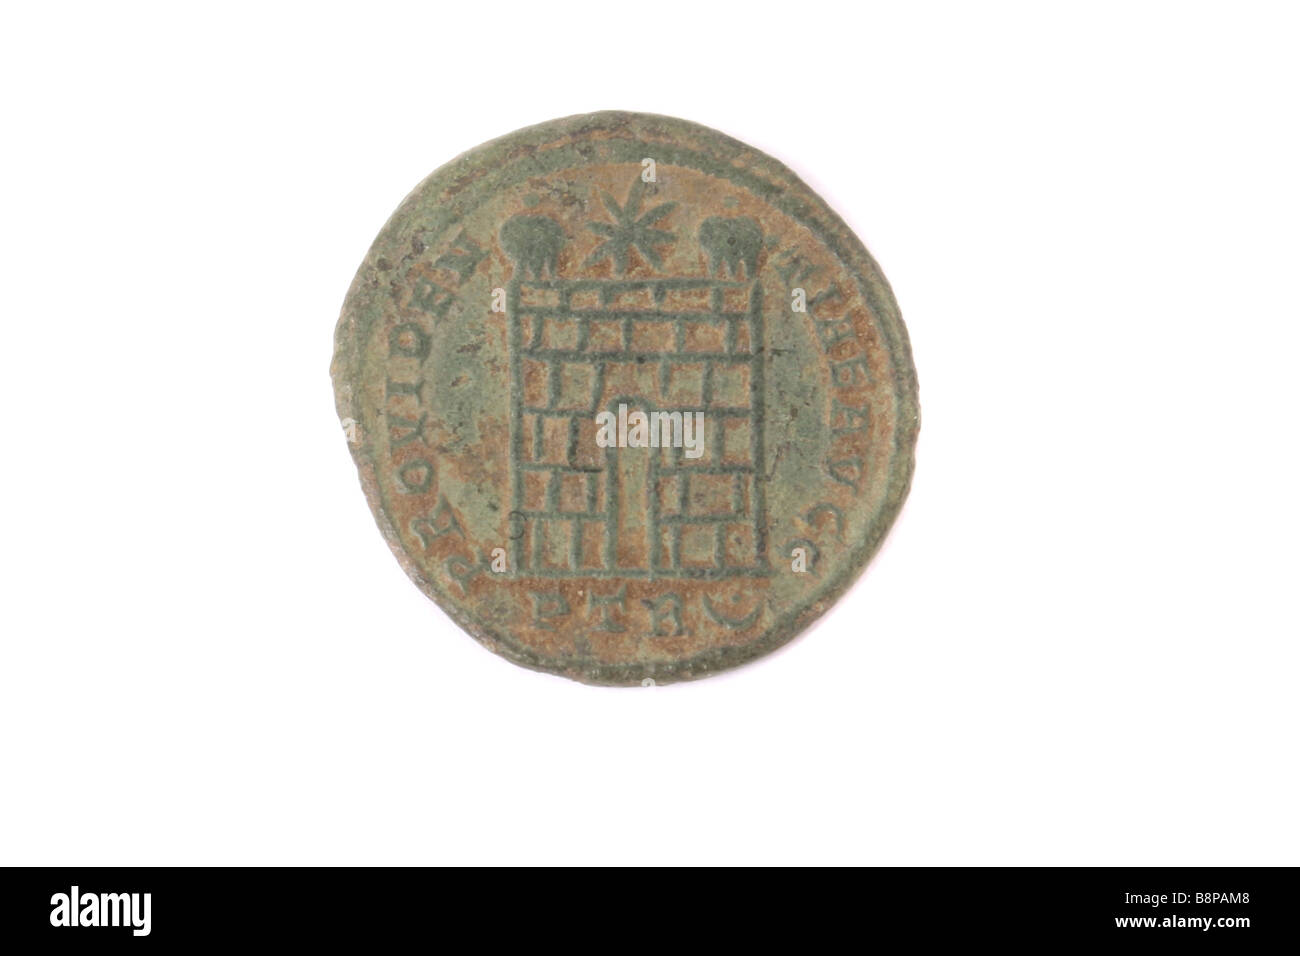 A Roman coin found in England. - Stock Image